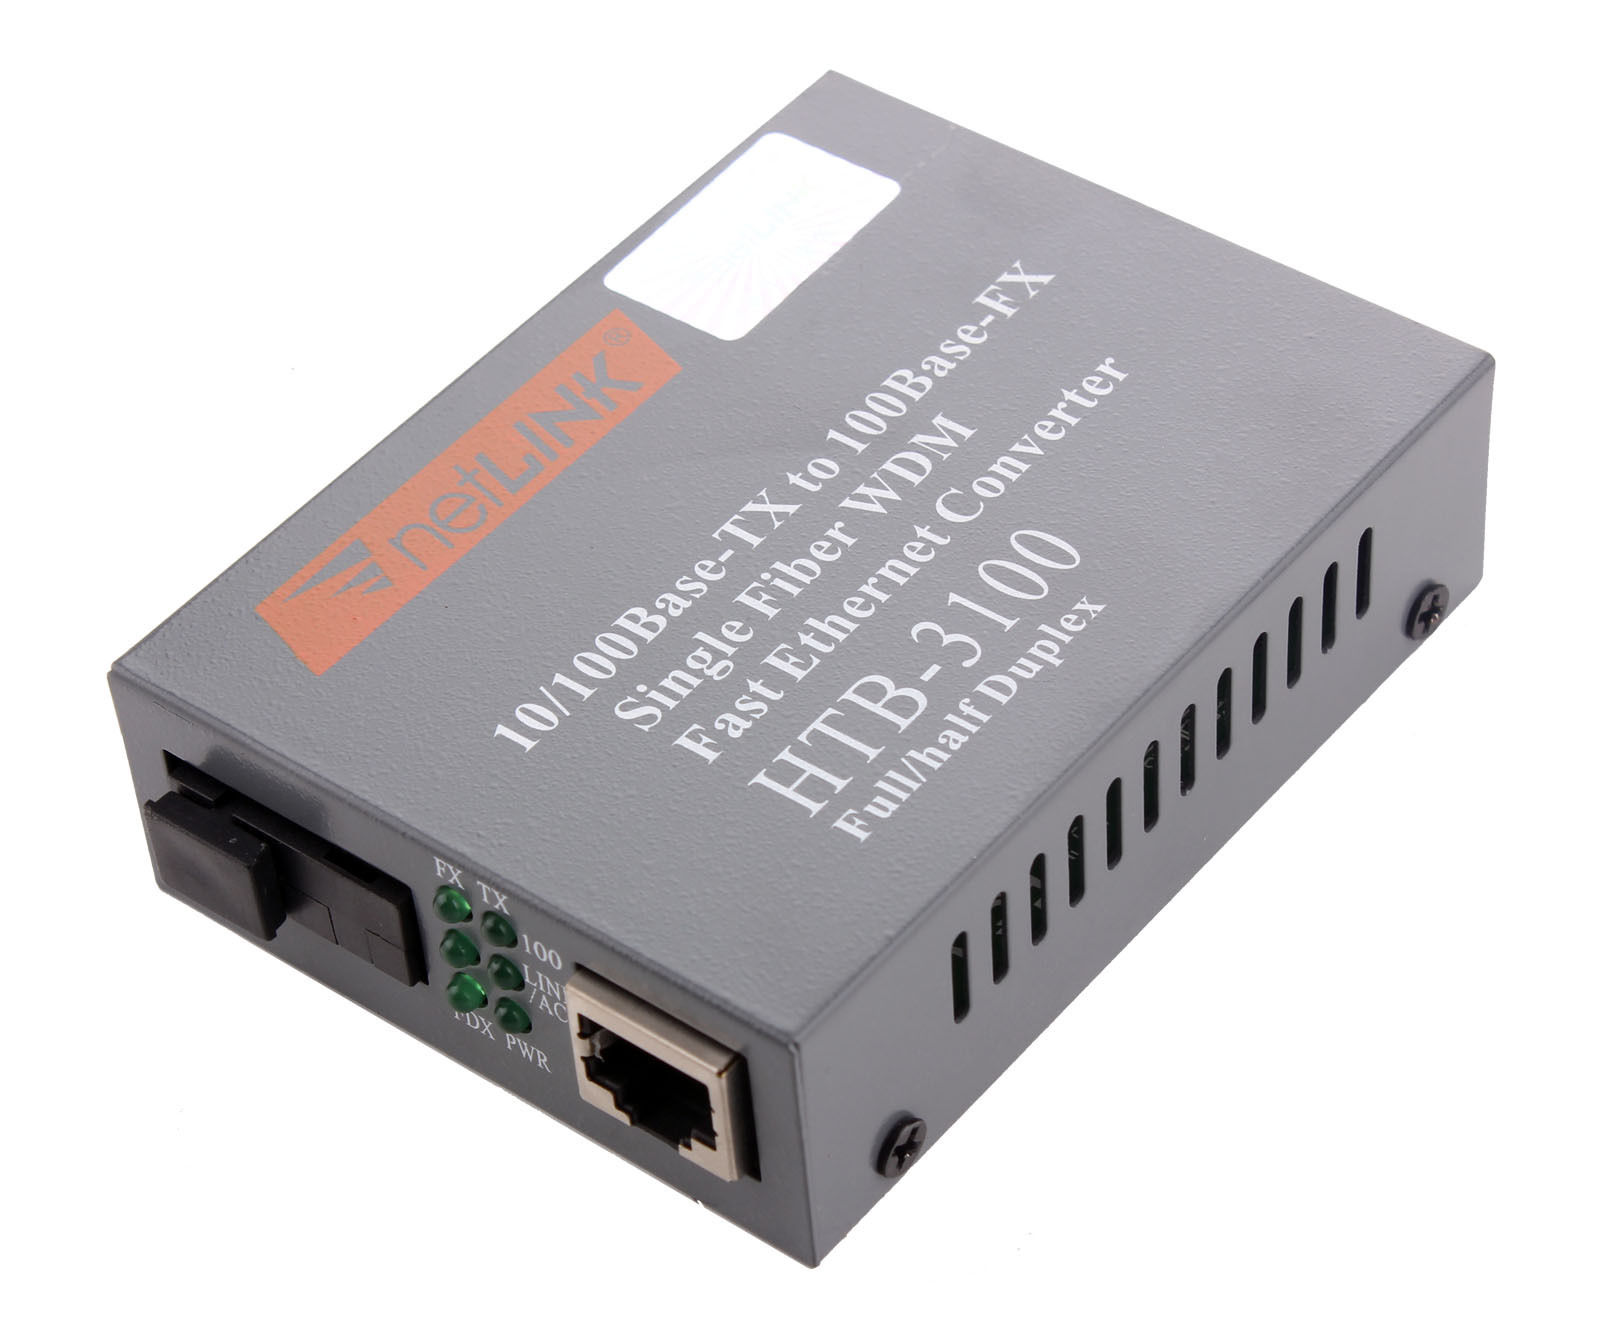 HTB-3100 netLINK 10/100M Single-mode Single-fiber WDM Fiber Media Converter